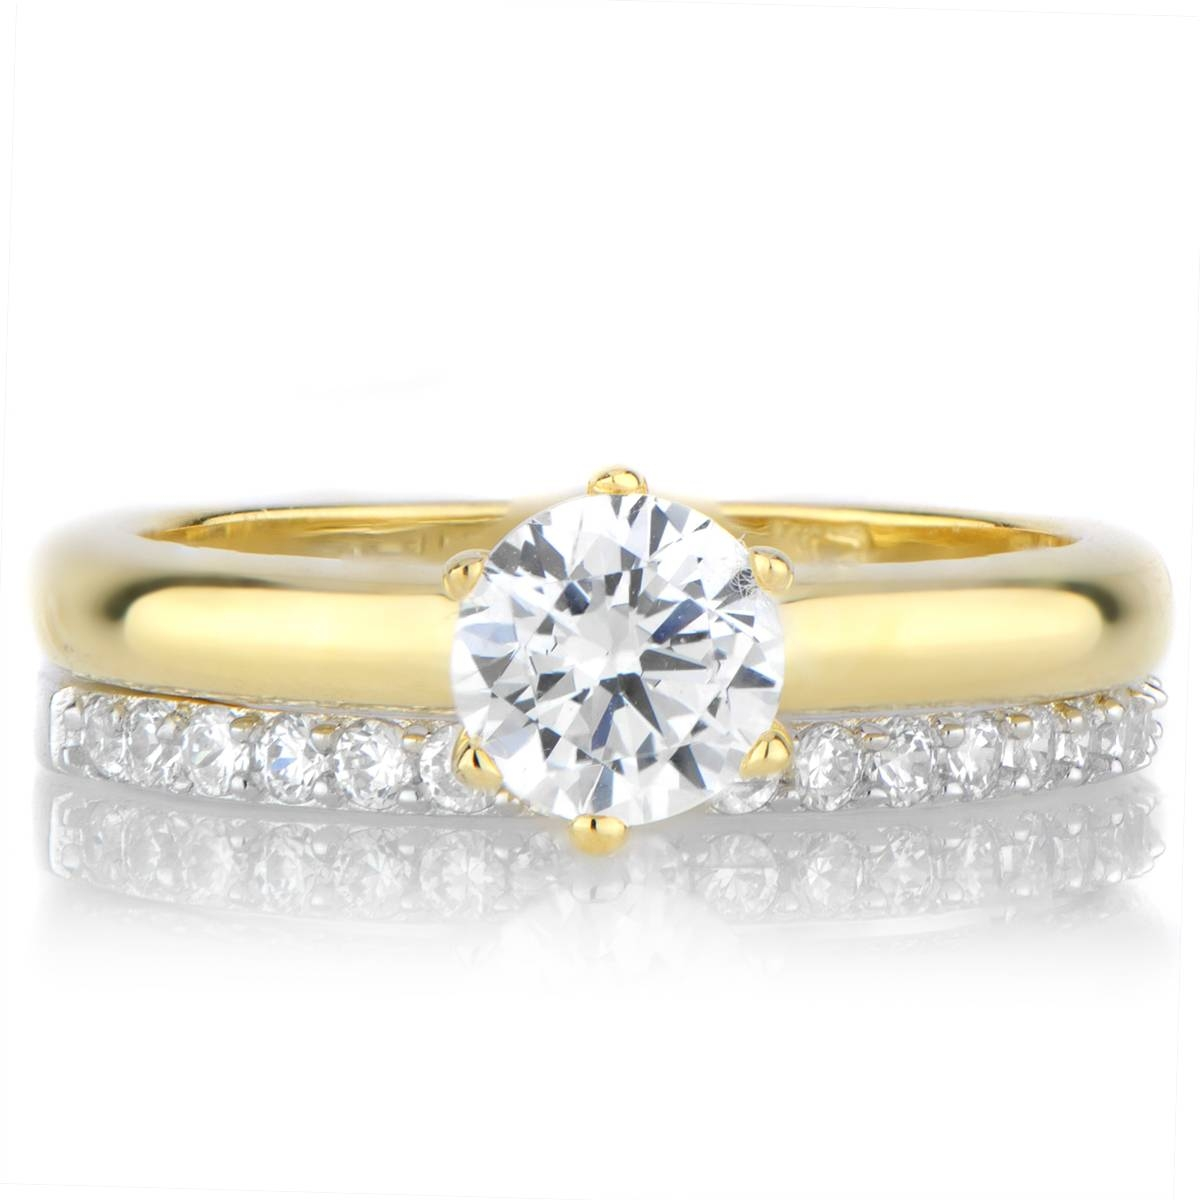 Plus Size Rings | Plus Size Engagement Rings | Emitations Within Wedding Rings Without Nickel (View 12 of 15)